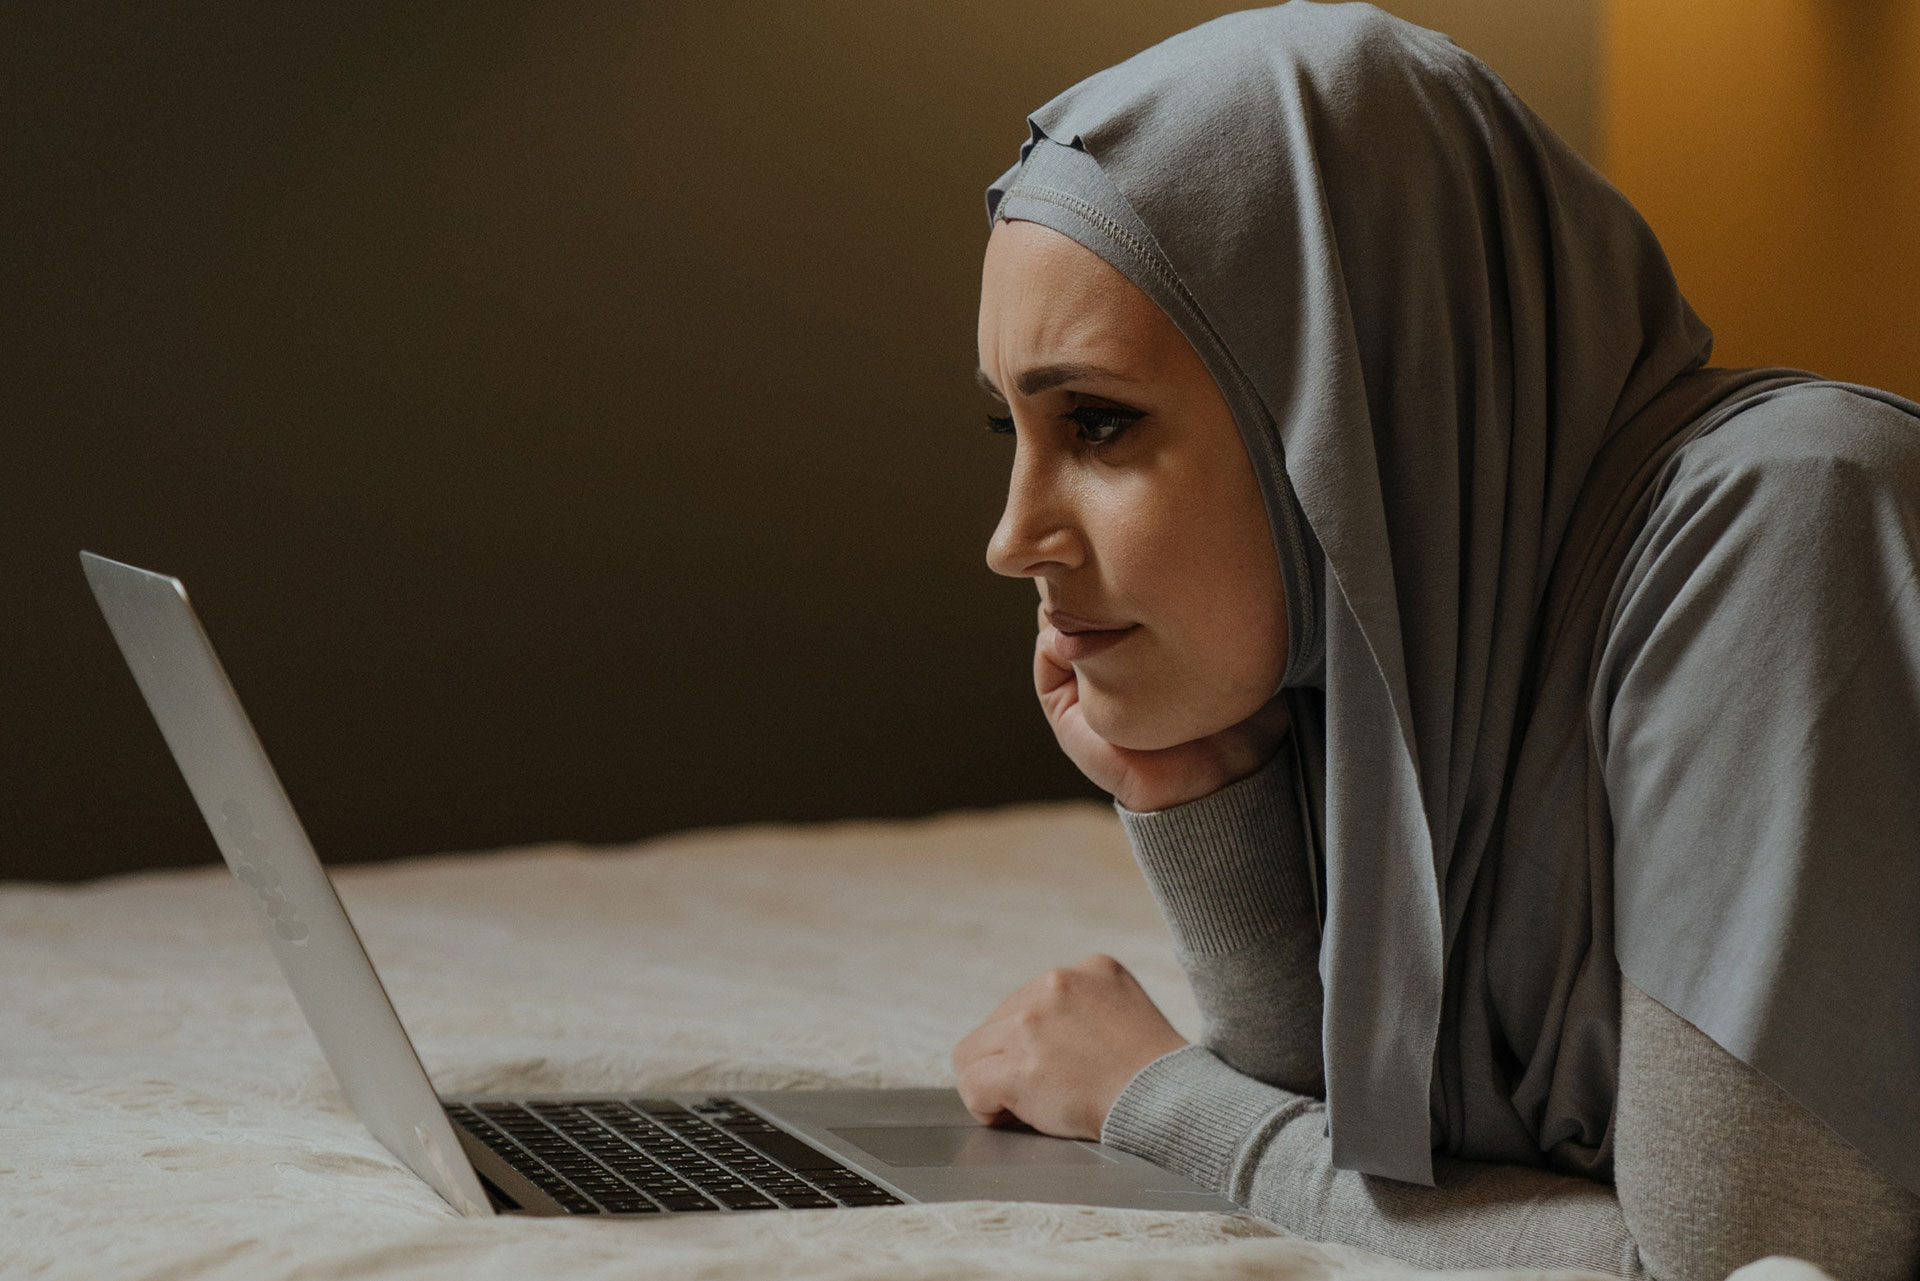 Woman in Gray Hijab using a laptop